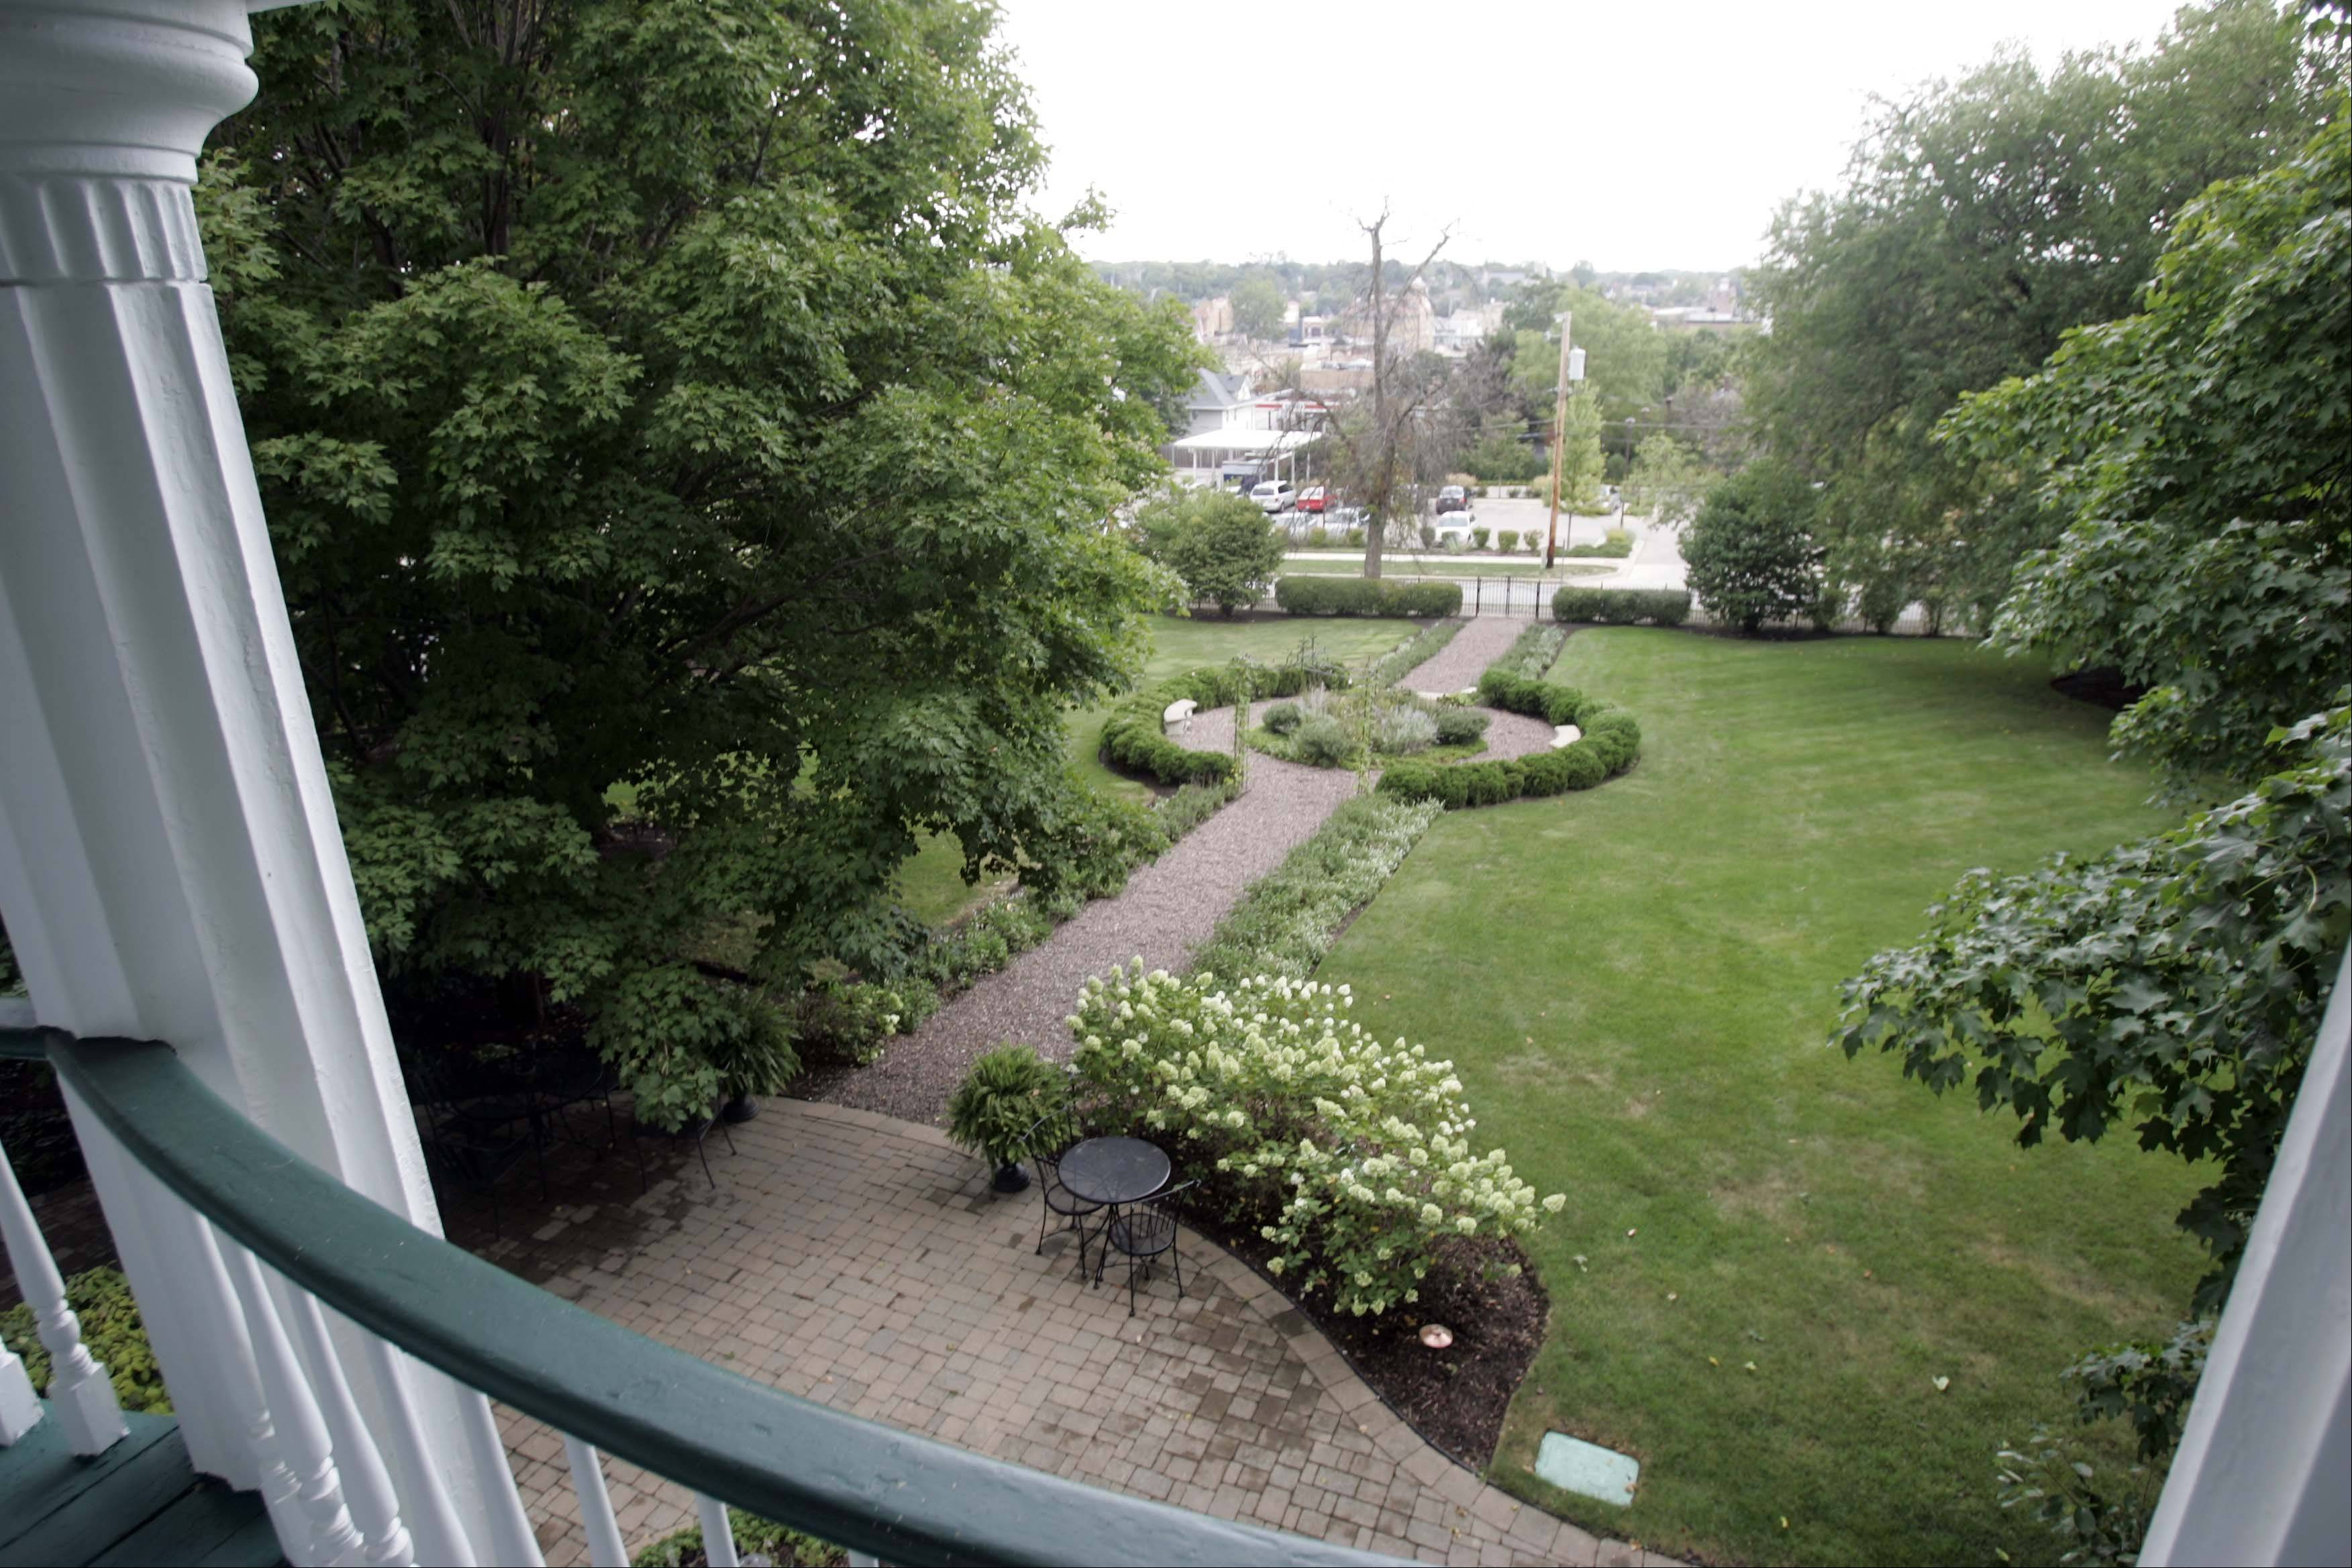 The view from the balcony of the 1859 Greek Revival home of early Mayor Dr. James Lewis in St. Charles. Dr. Lewis was able to see the Fox River from here.